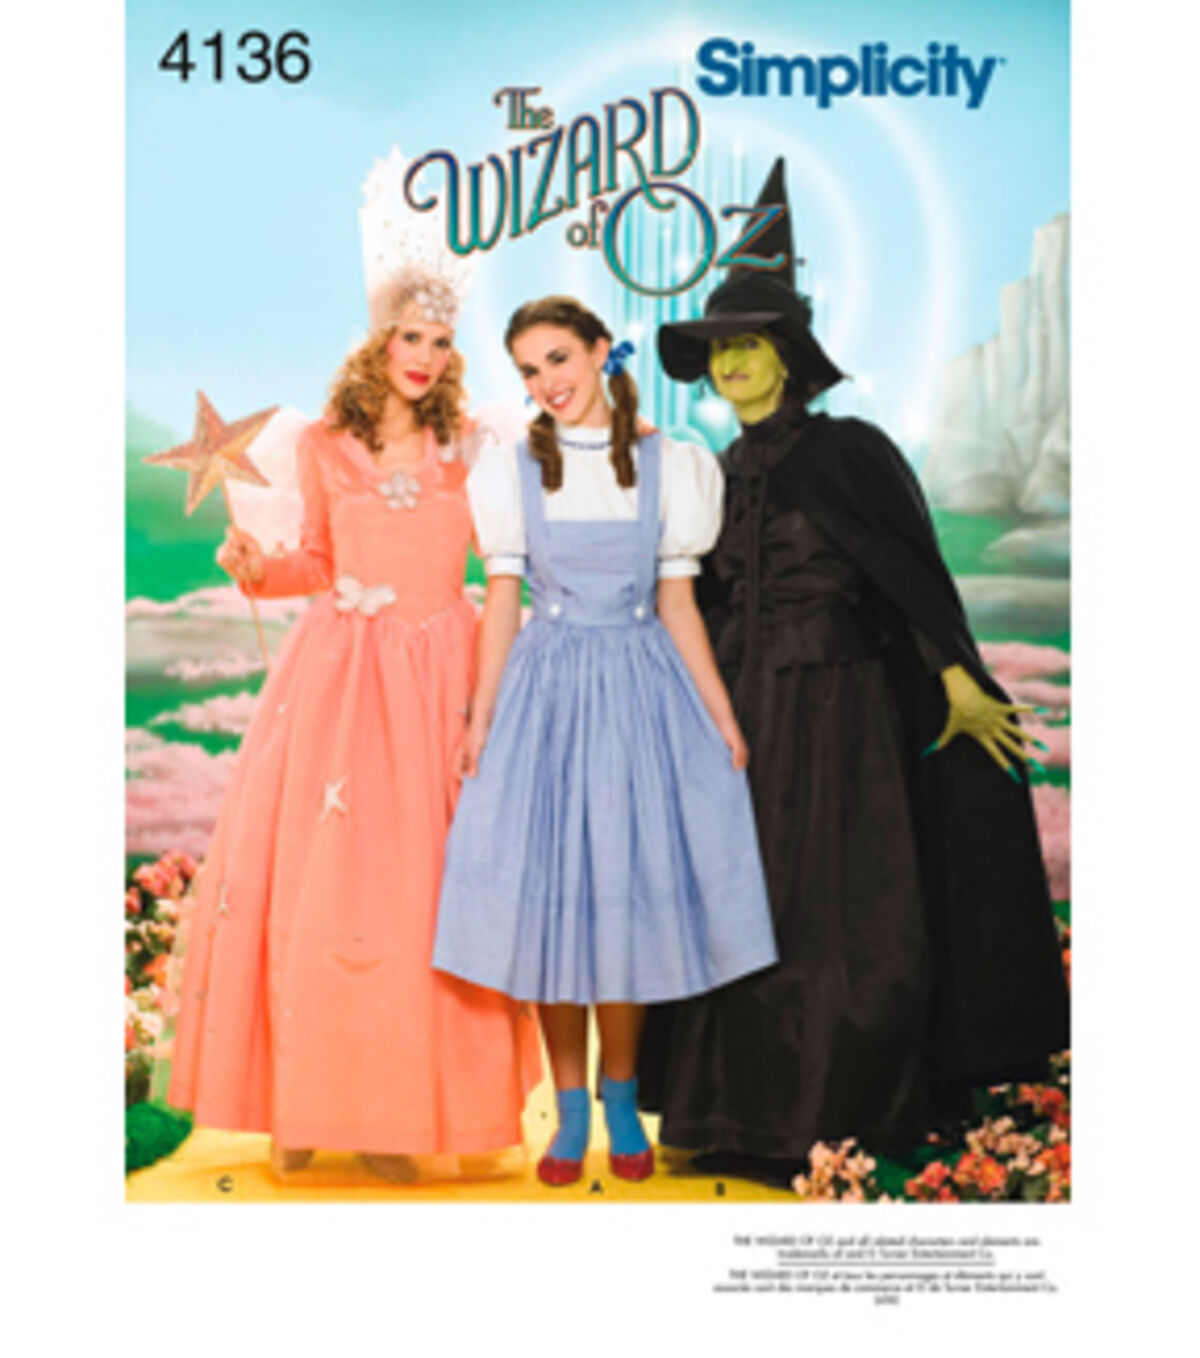 1940s Sewing Patterns – Dresses, Overalls, Lingerie etc Simplicity Pattern 4136 - Misses The Wizard of Oz Costumes - Sizes 6-8-10-12 $9.57 AT vintagedancer.com